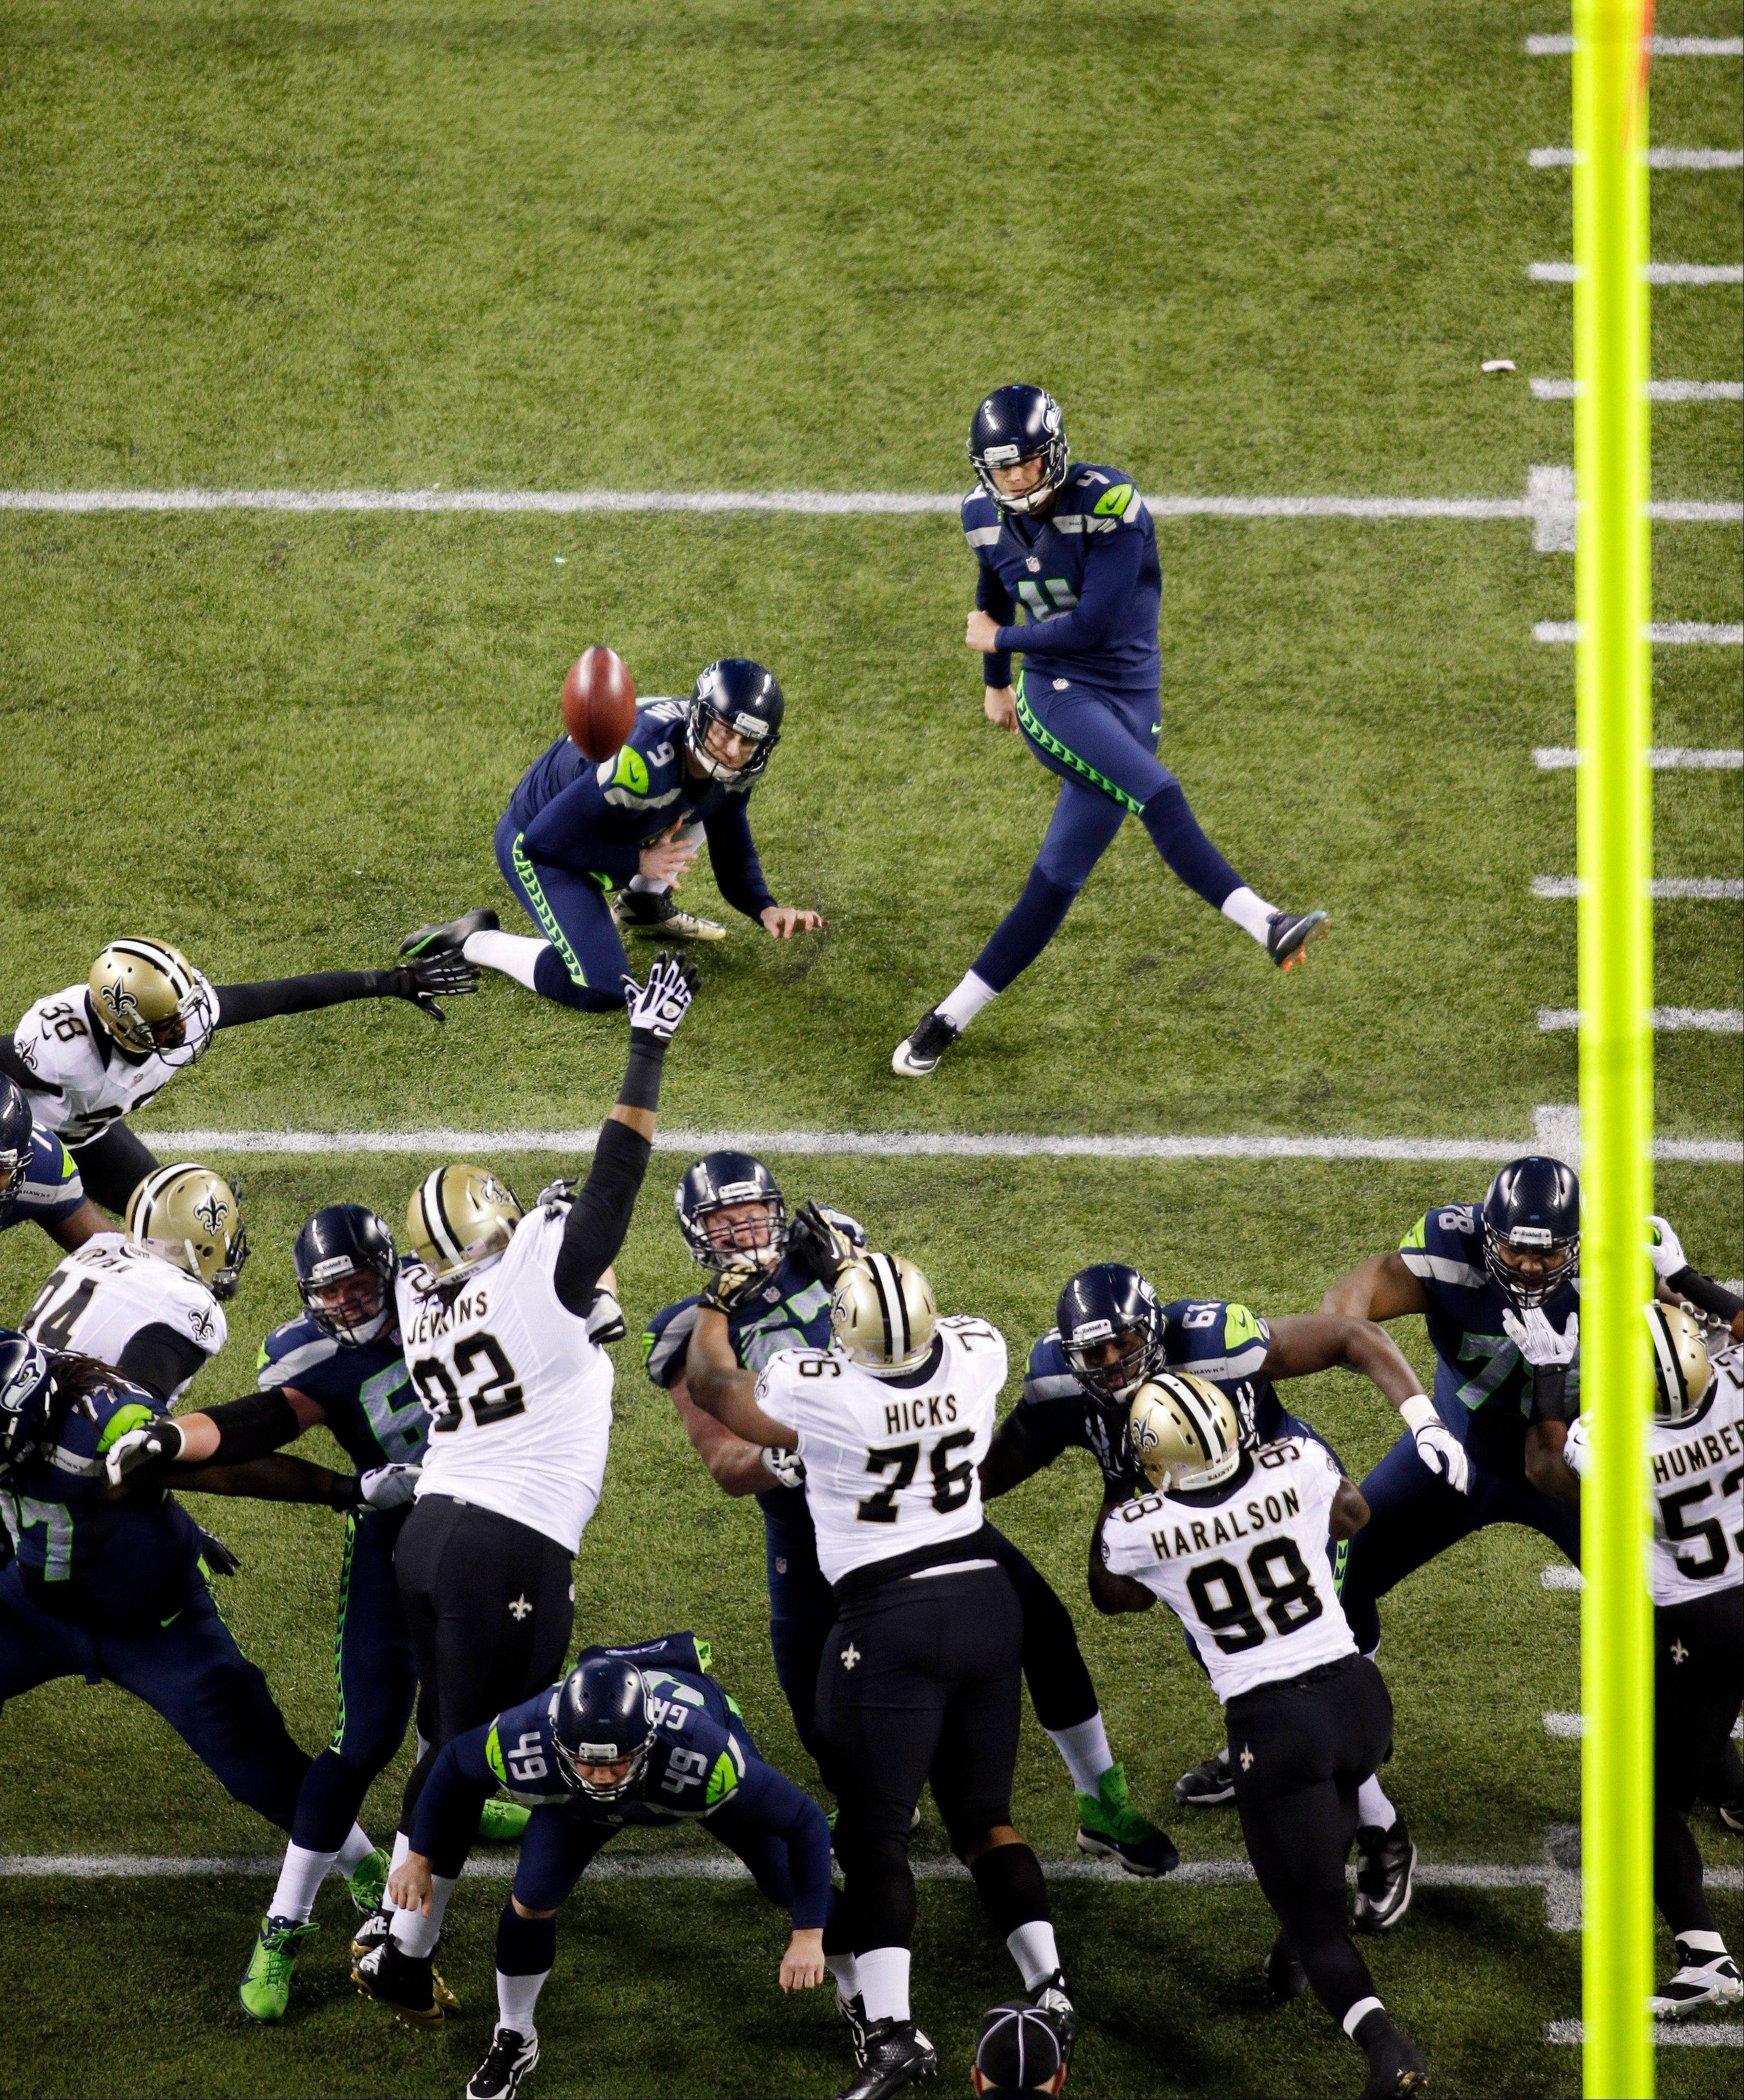 Seattle Seahawks kicker Steven Hauschka, upper right, kicks a field goal as Seahawks� Jon Ryan holds in the first half of an NFL football game Monday against the New Orleans Saints in Seattle.